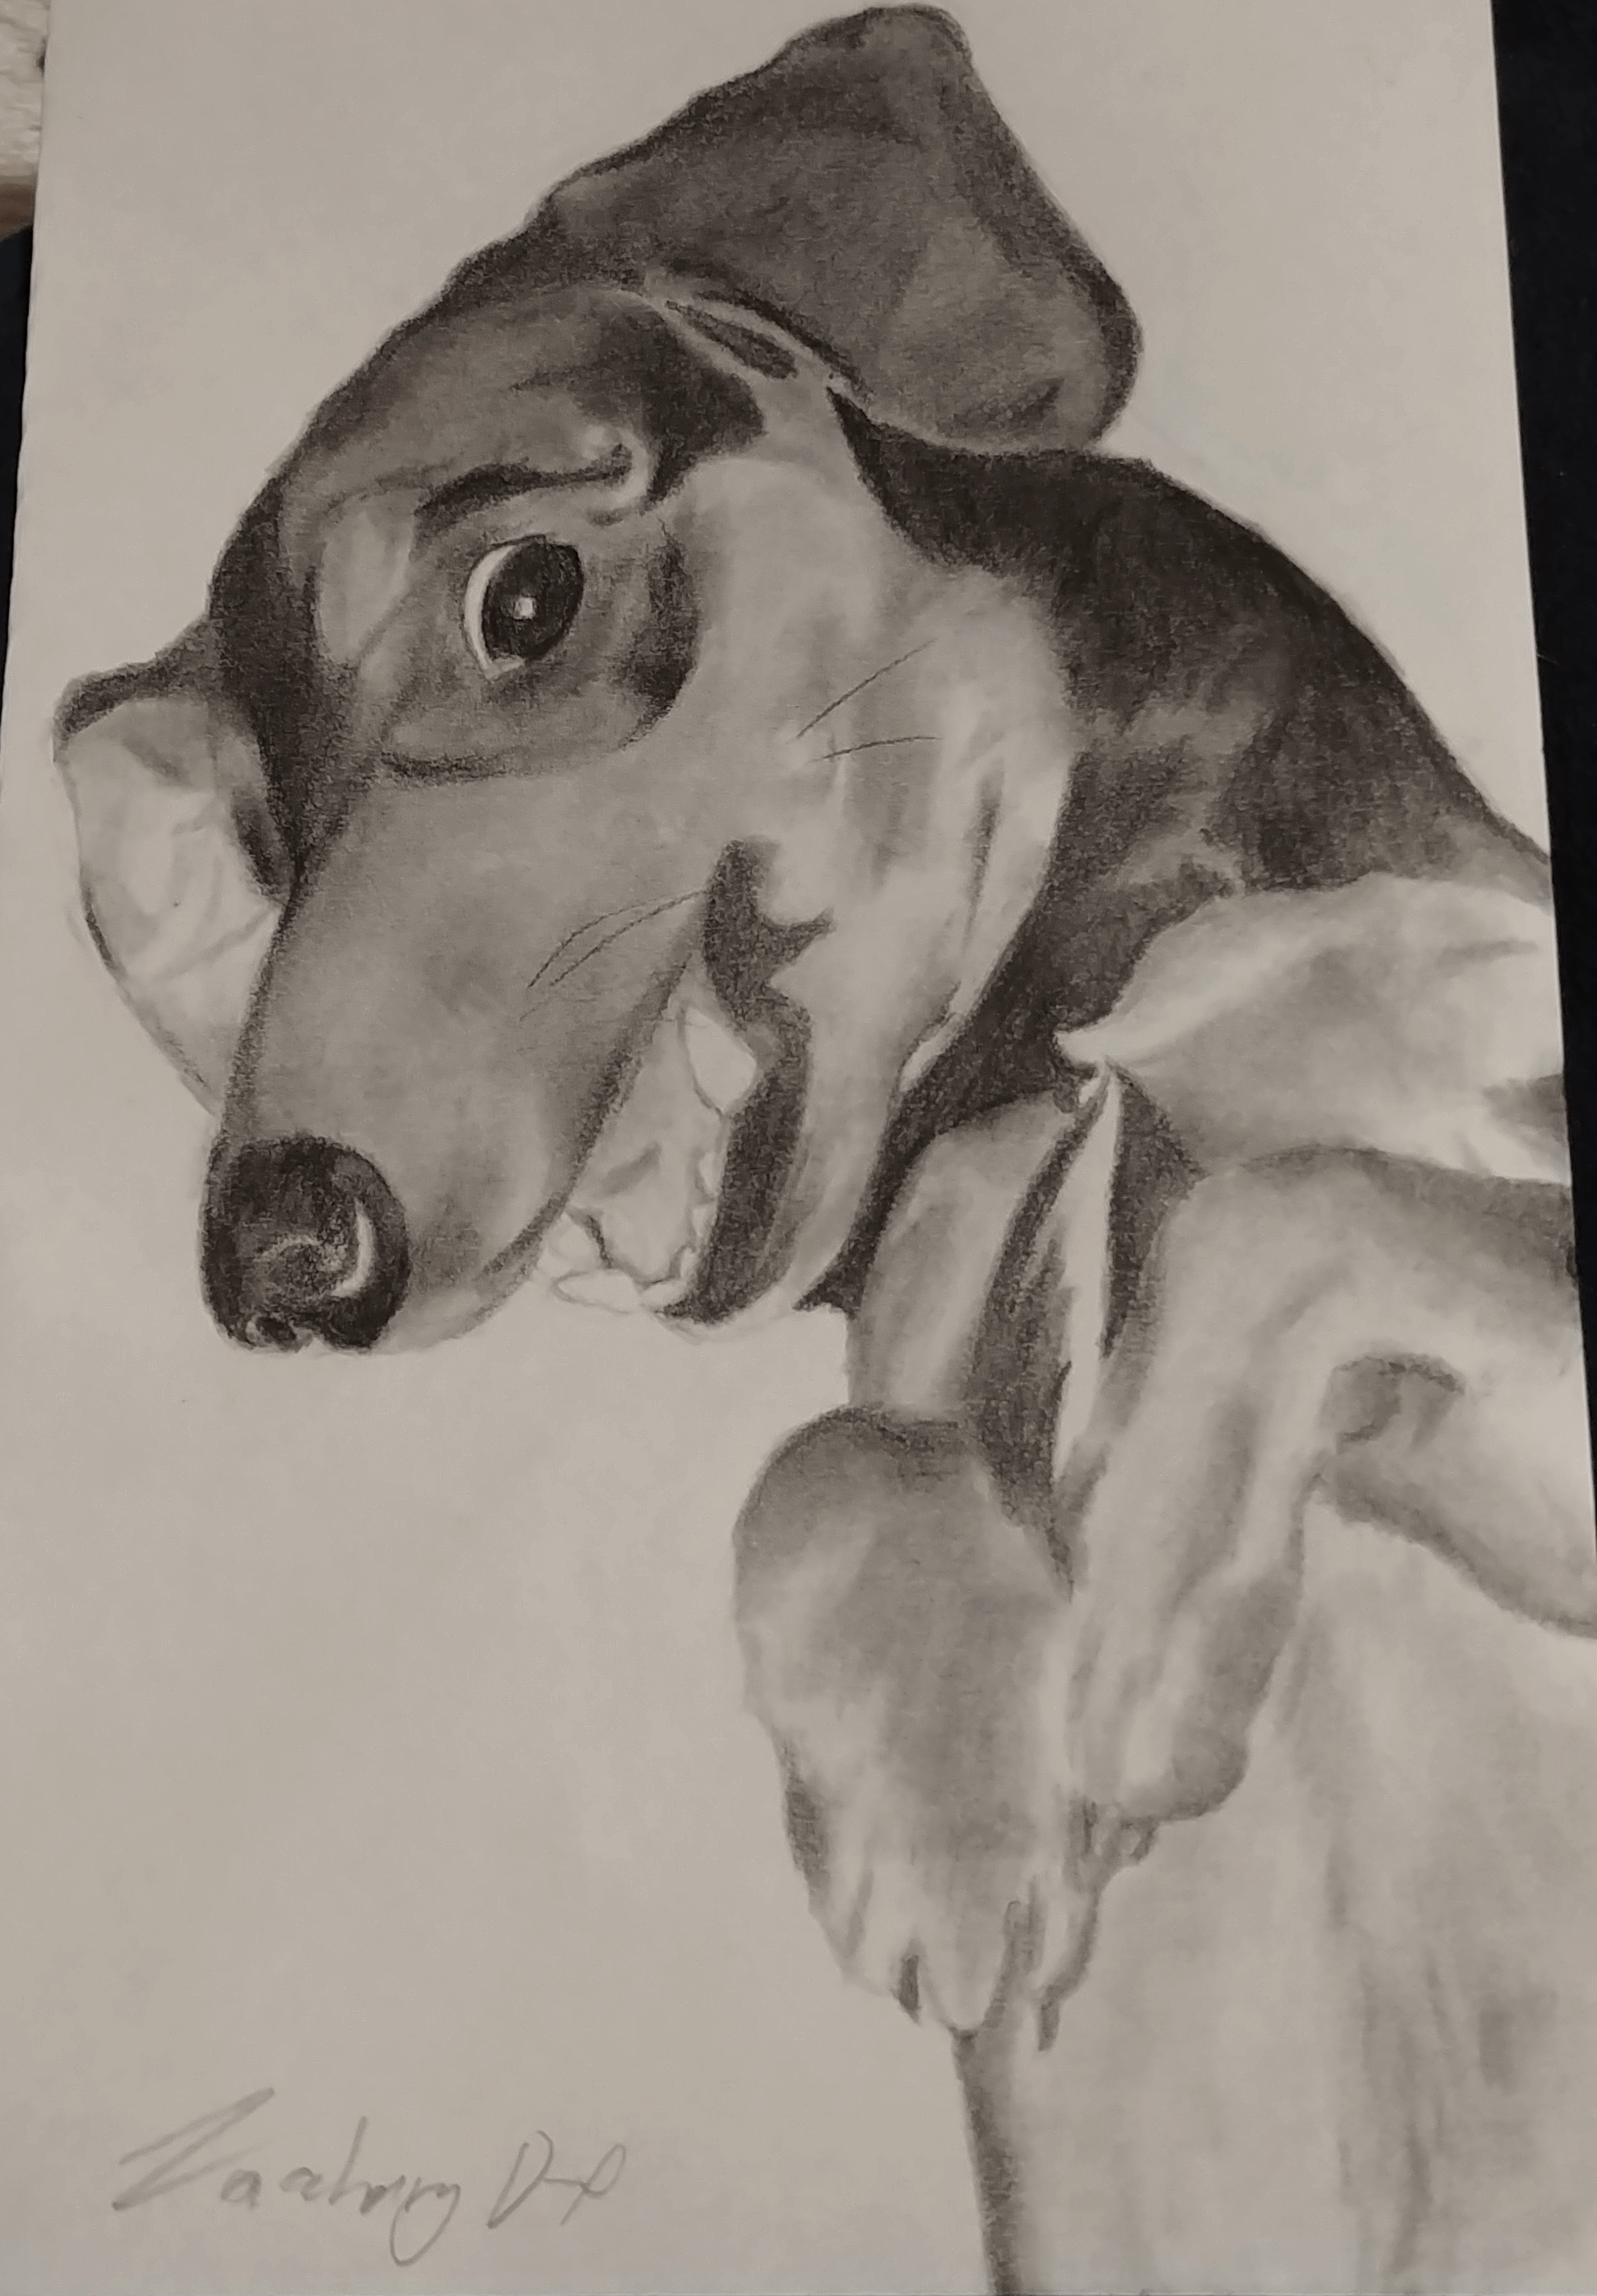 A pencil drawing of Khiron, my puppy, lying on his back with his paws in the air, smiling happily.